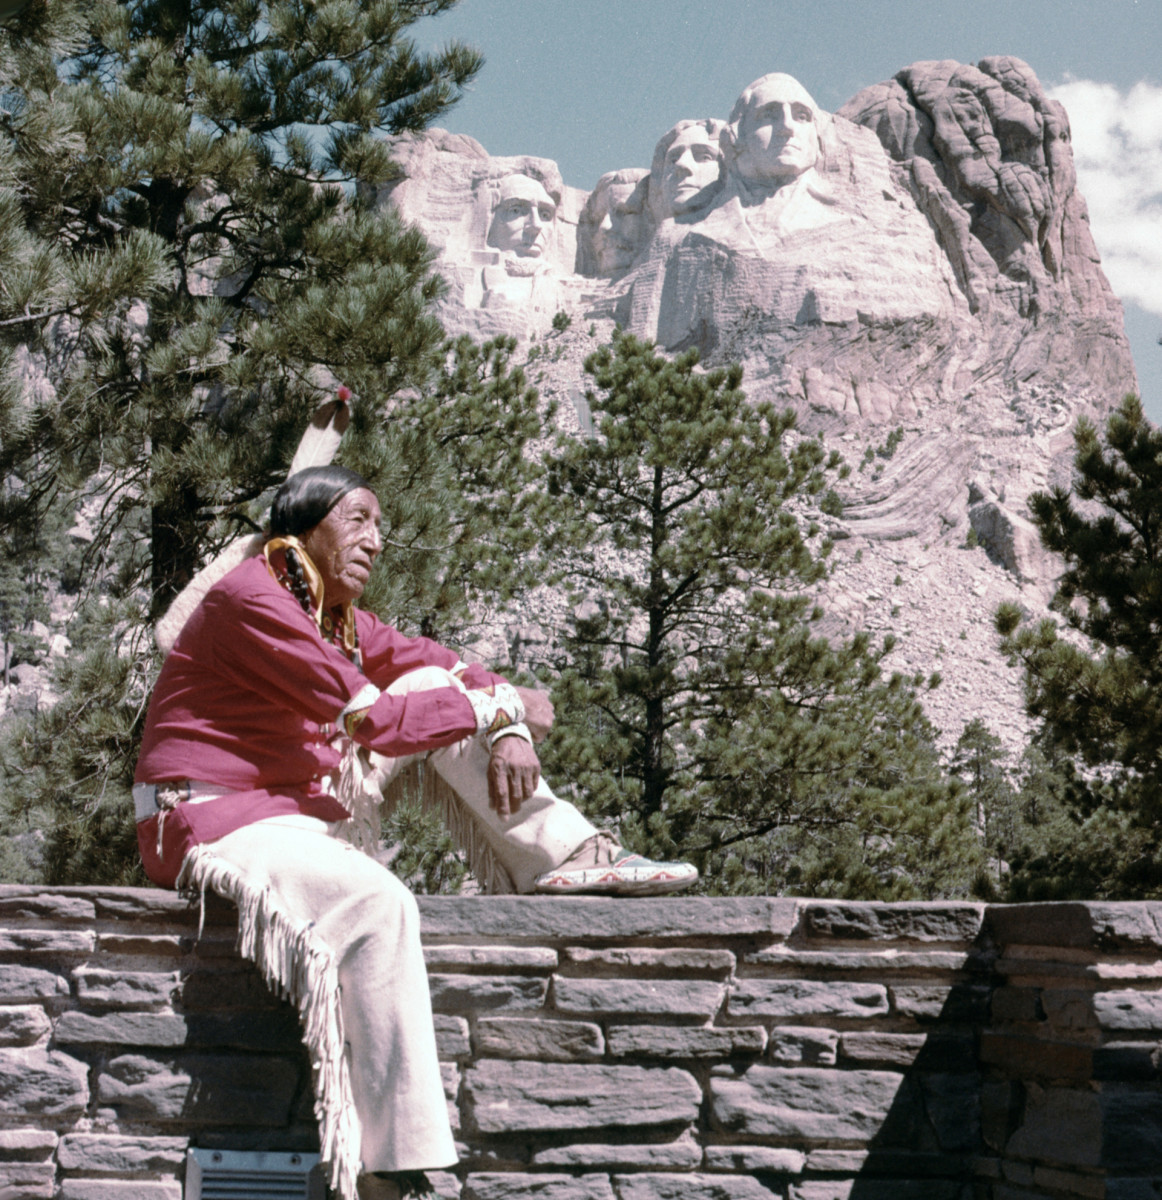 Oglala Indian Chief, Ben Black Elk, photographed in front of Mount Rushmore, c. 1962.